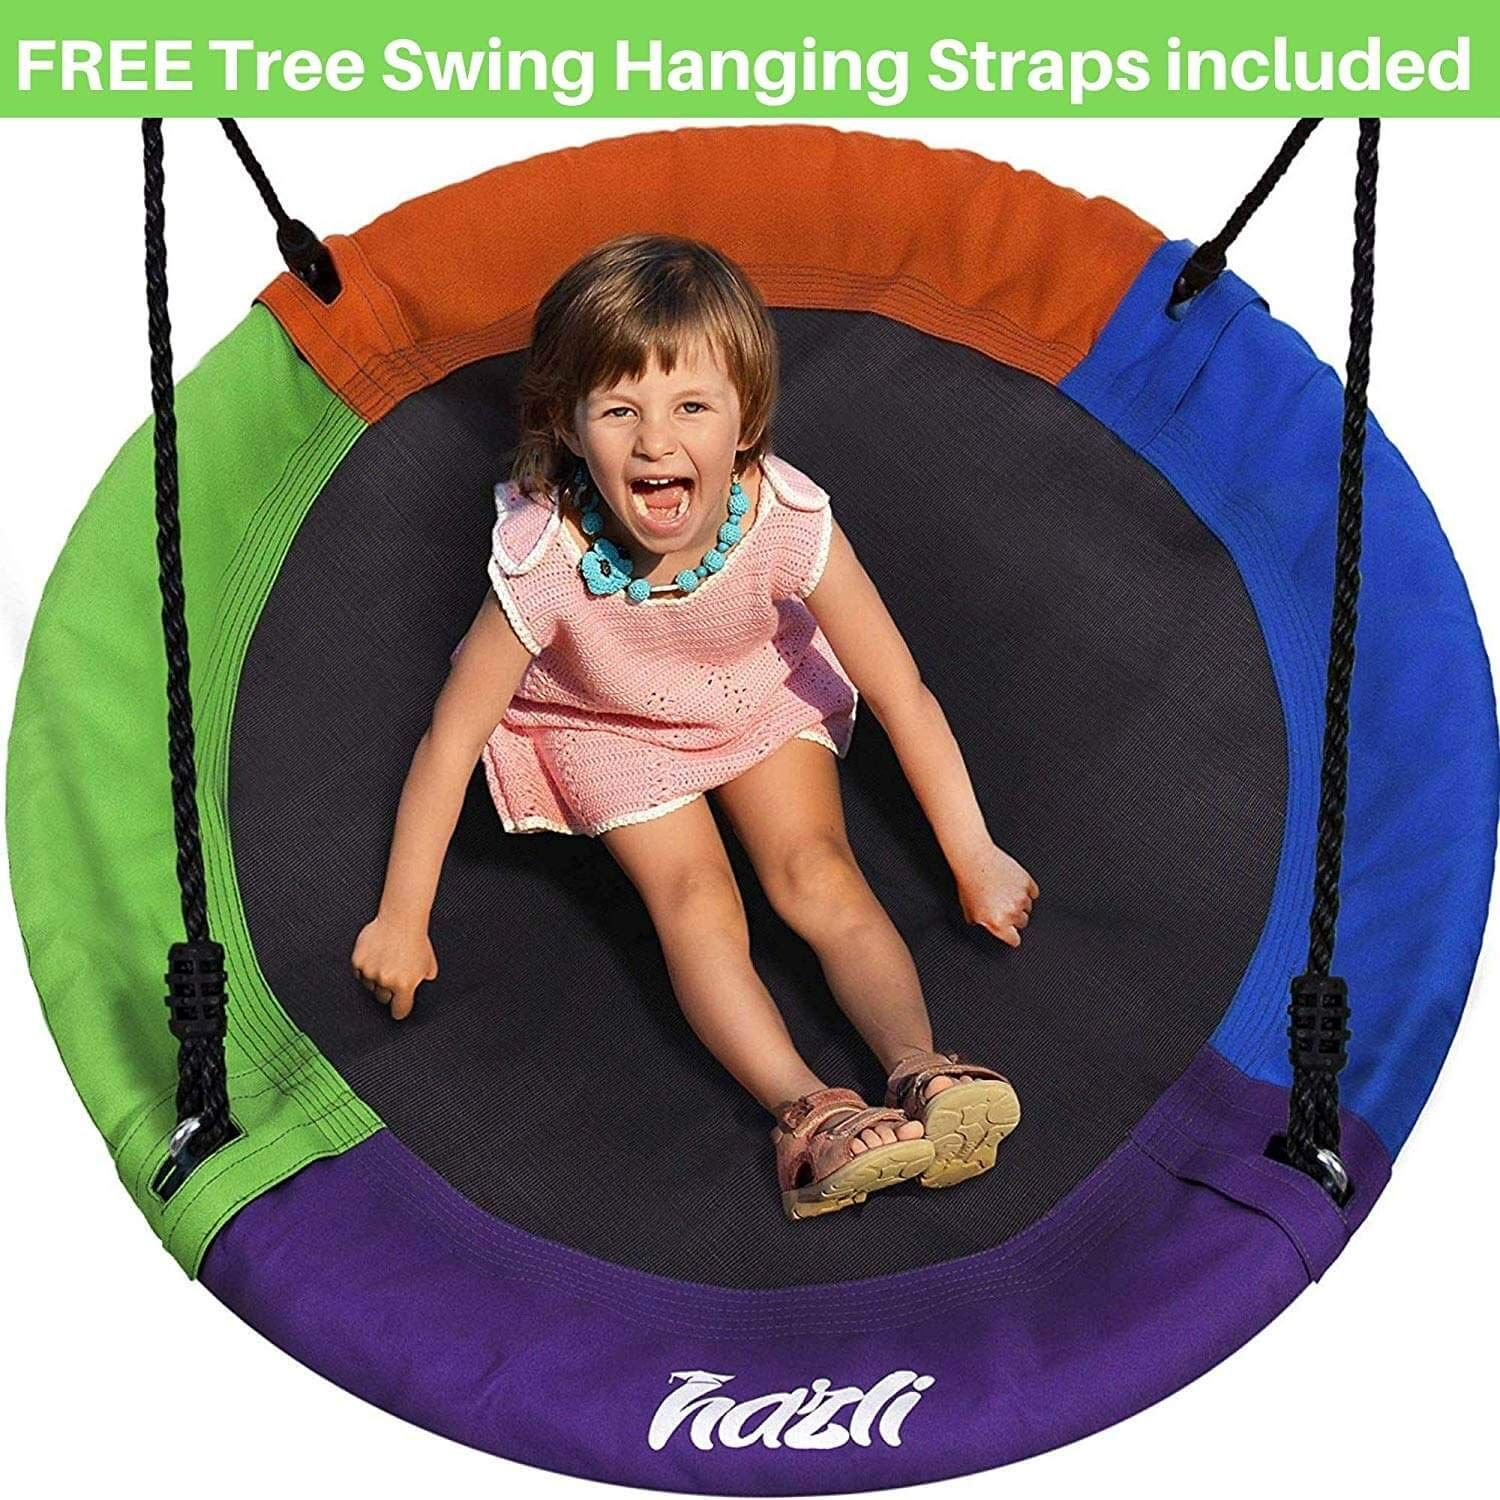 HAPPYMATY 40 Round Saucer Tree Swing 880lb Giant Sturdy Flying Platform for Kids and Auldts with Long Adjustable Hanging Kits Easy Installation and Hang from The Tree